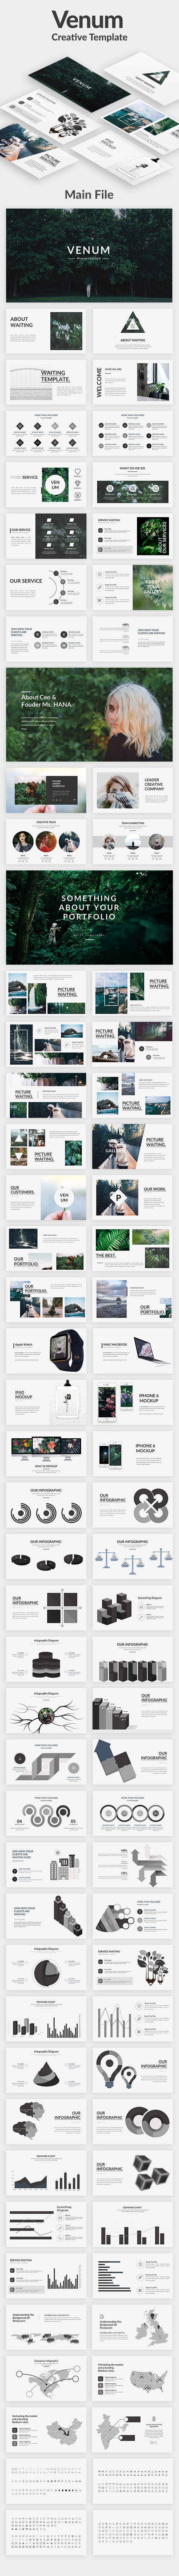 Venum Creative Google Slide Template - Google Slides Presentation Templates